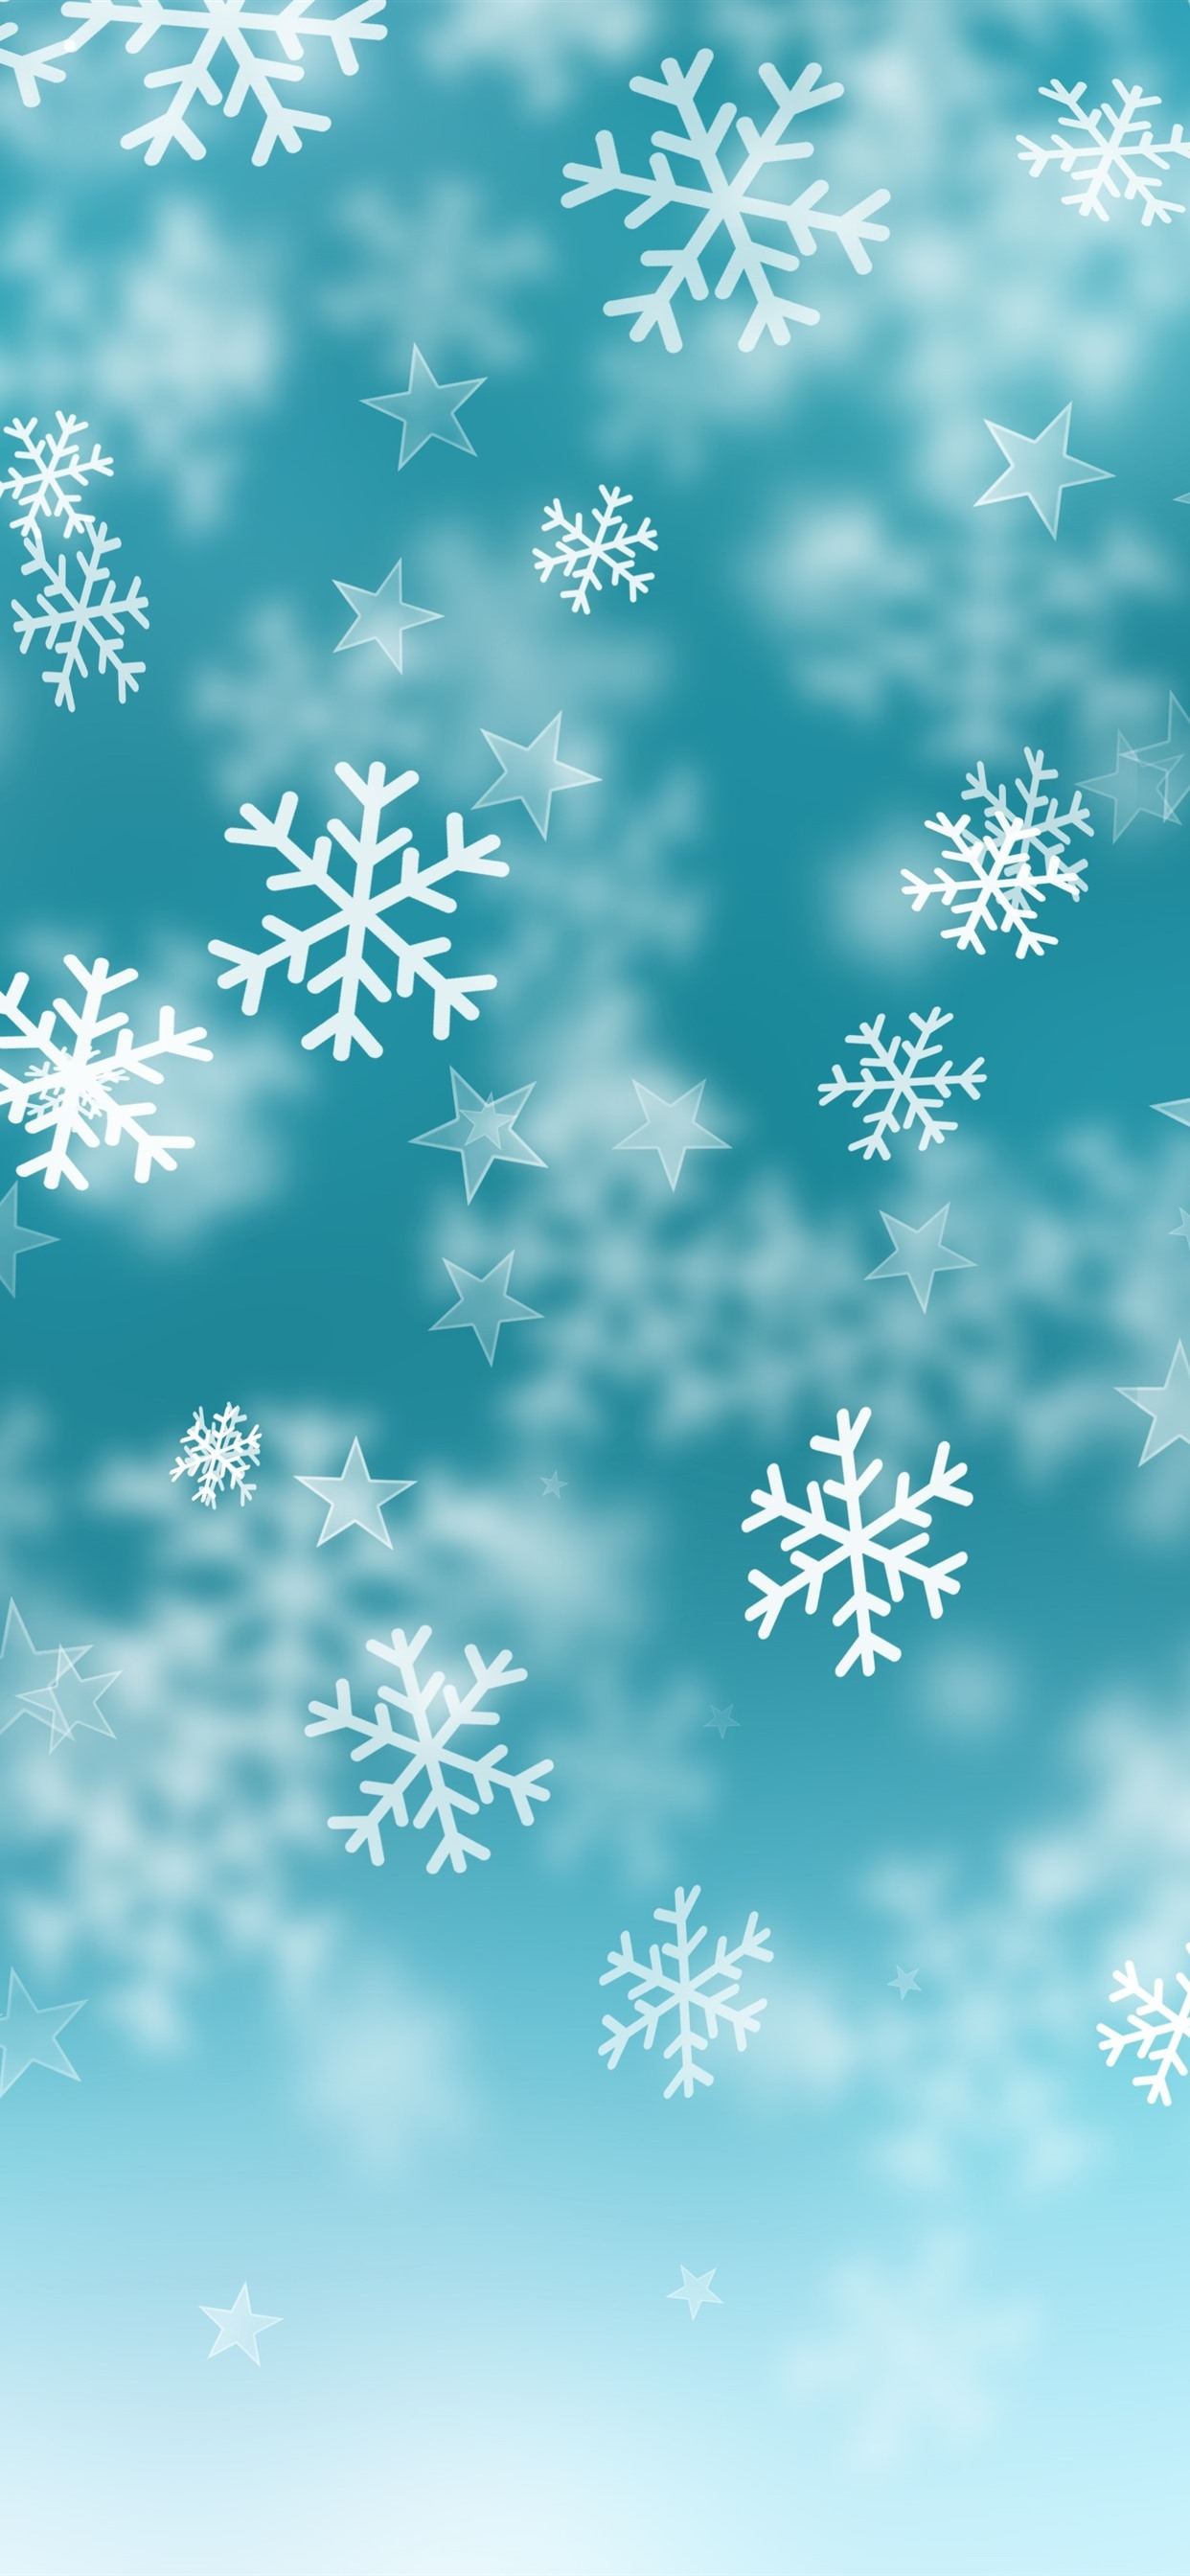 Snowflakes Stars Blue Background 1242x2688 Iphone Xs Max